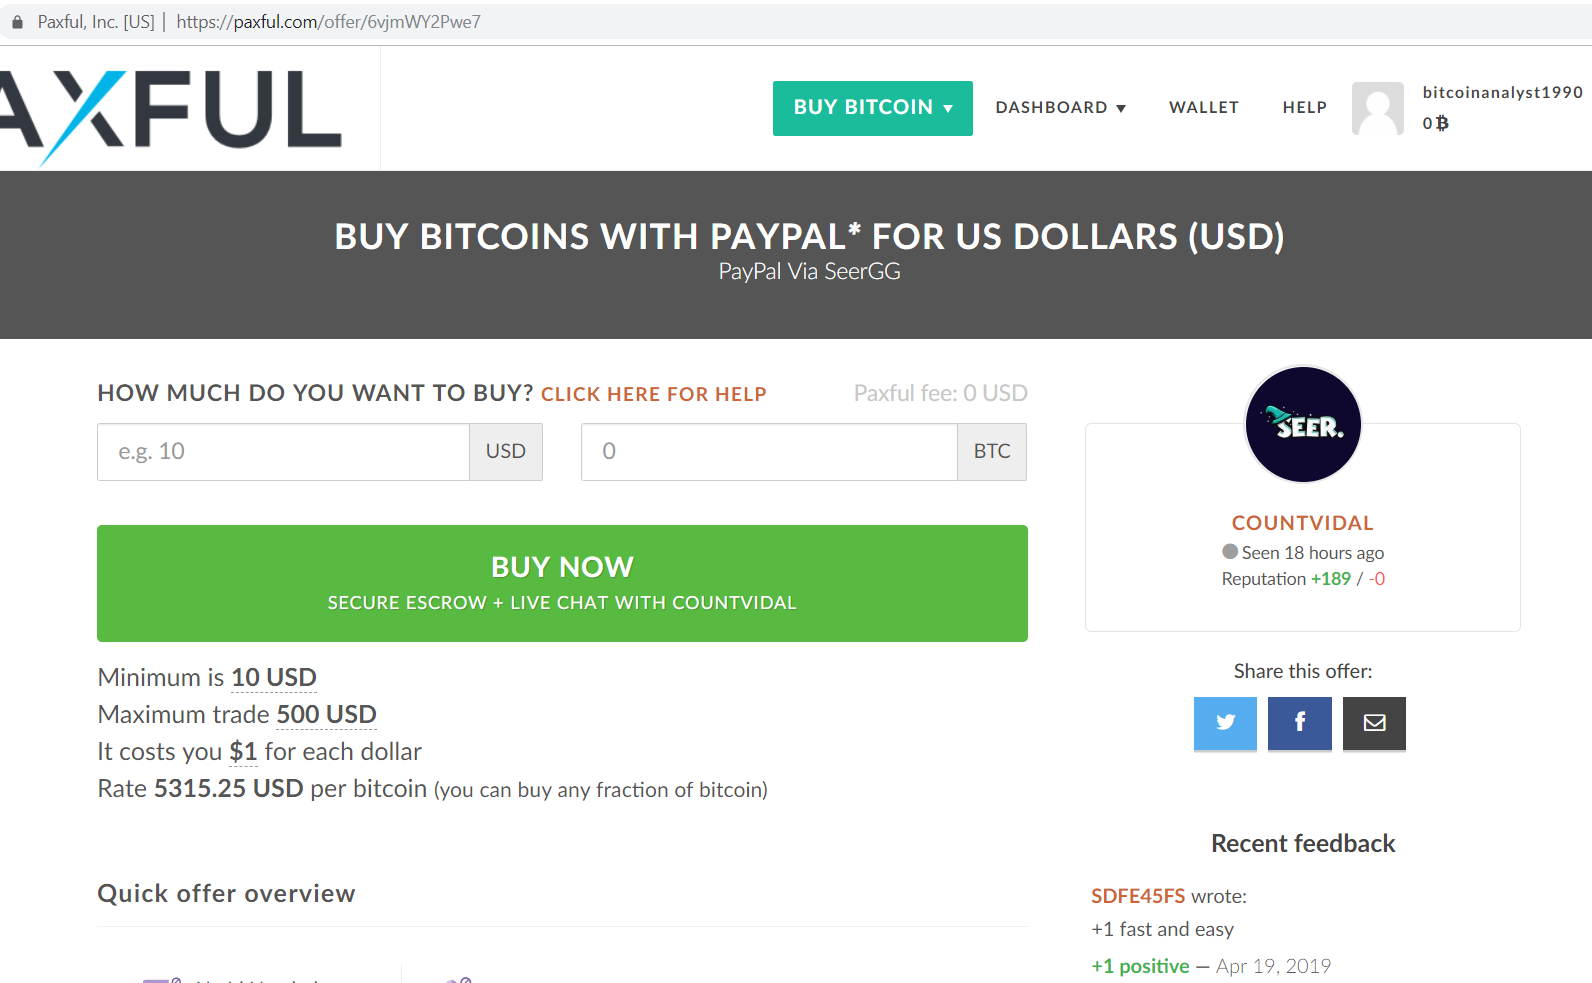 Paxful buy bitcoins with paypal form.